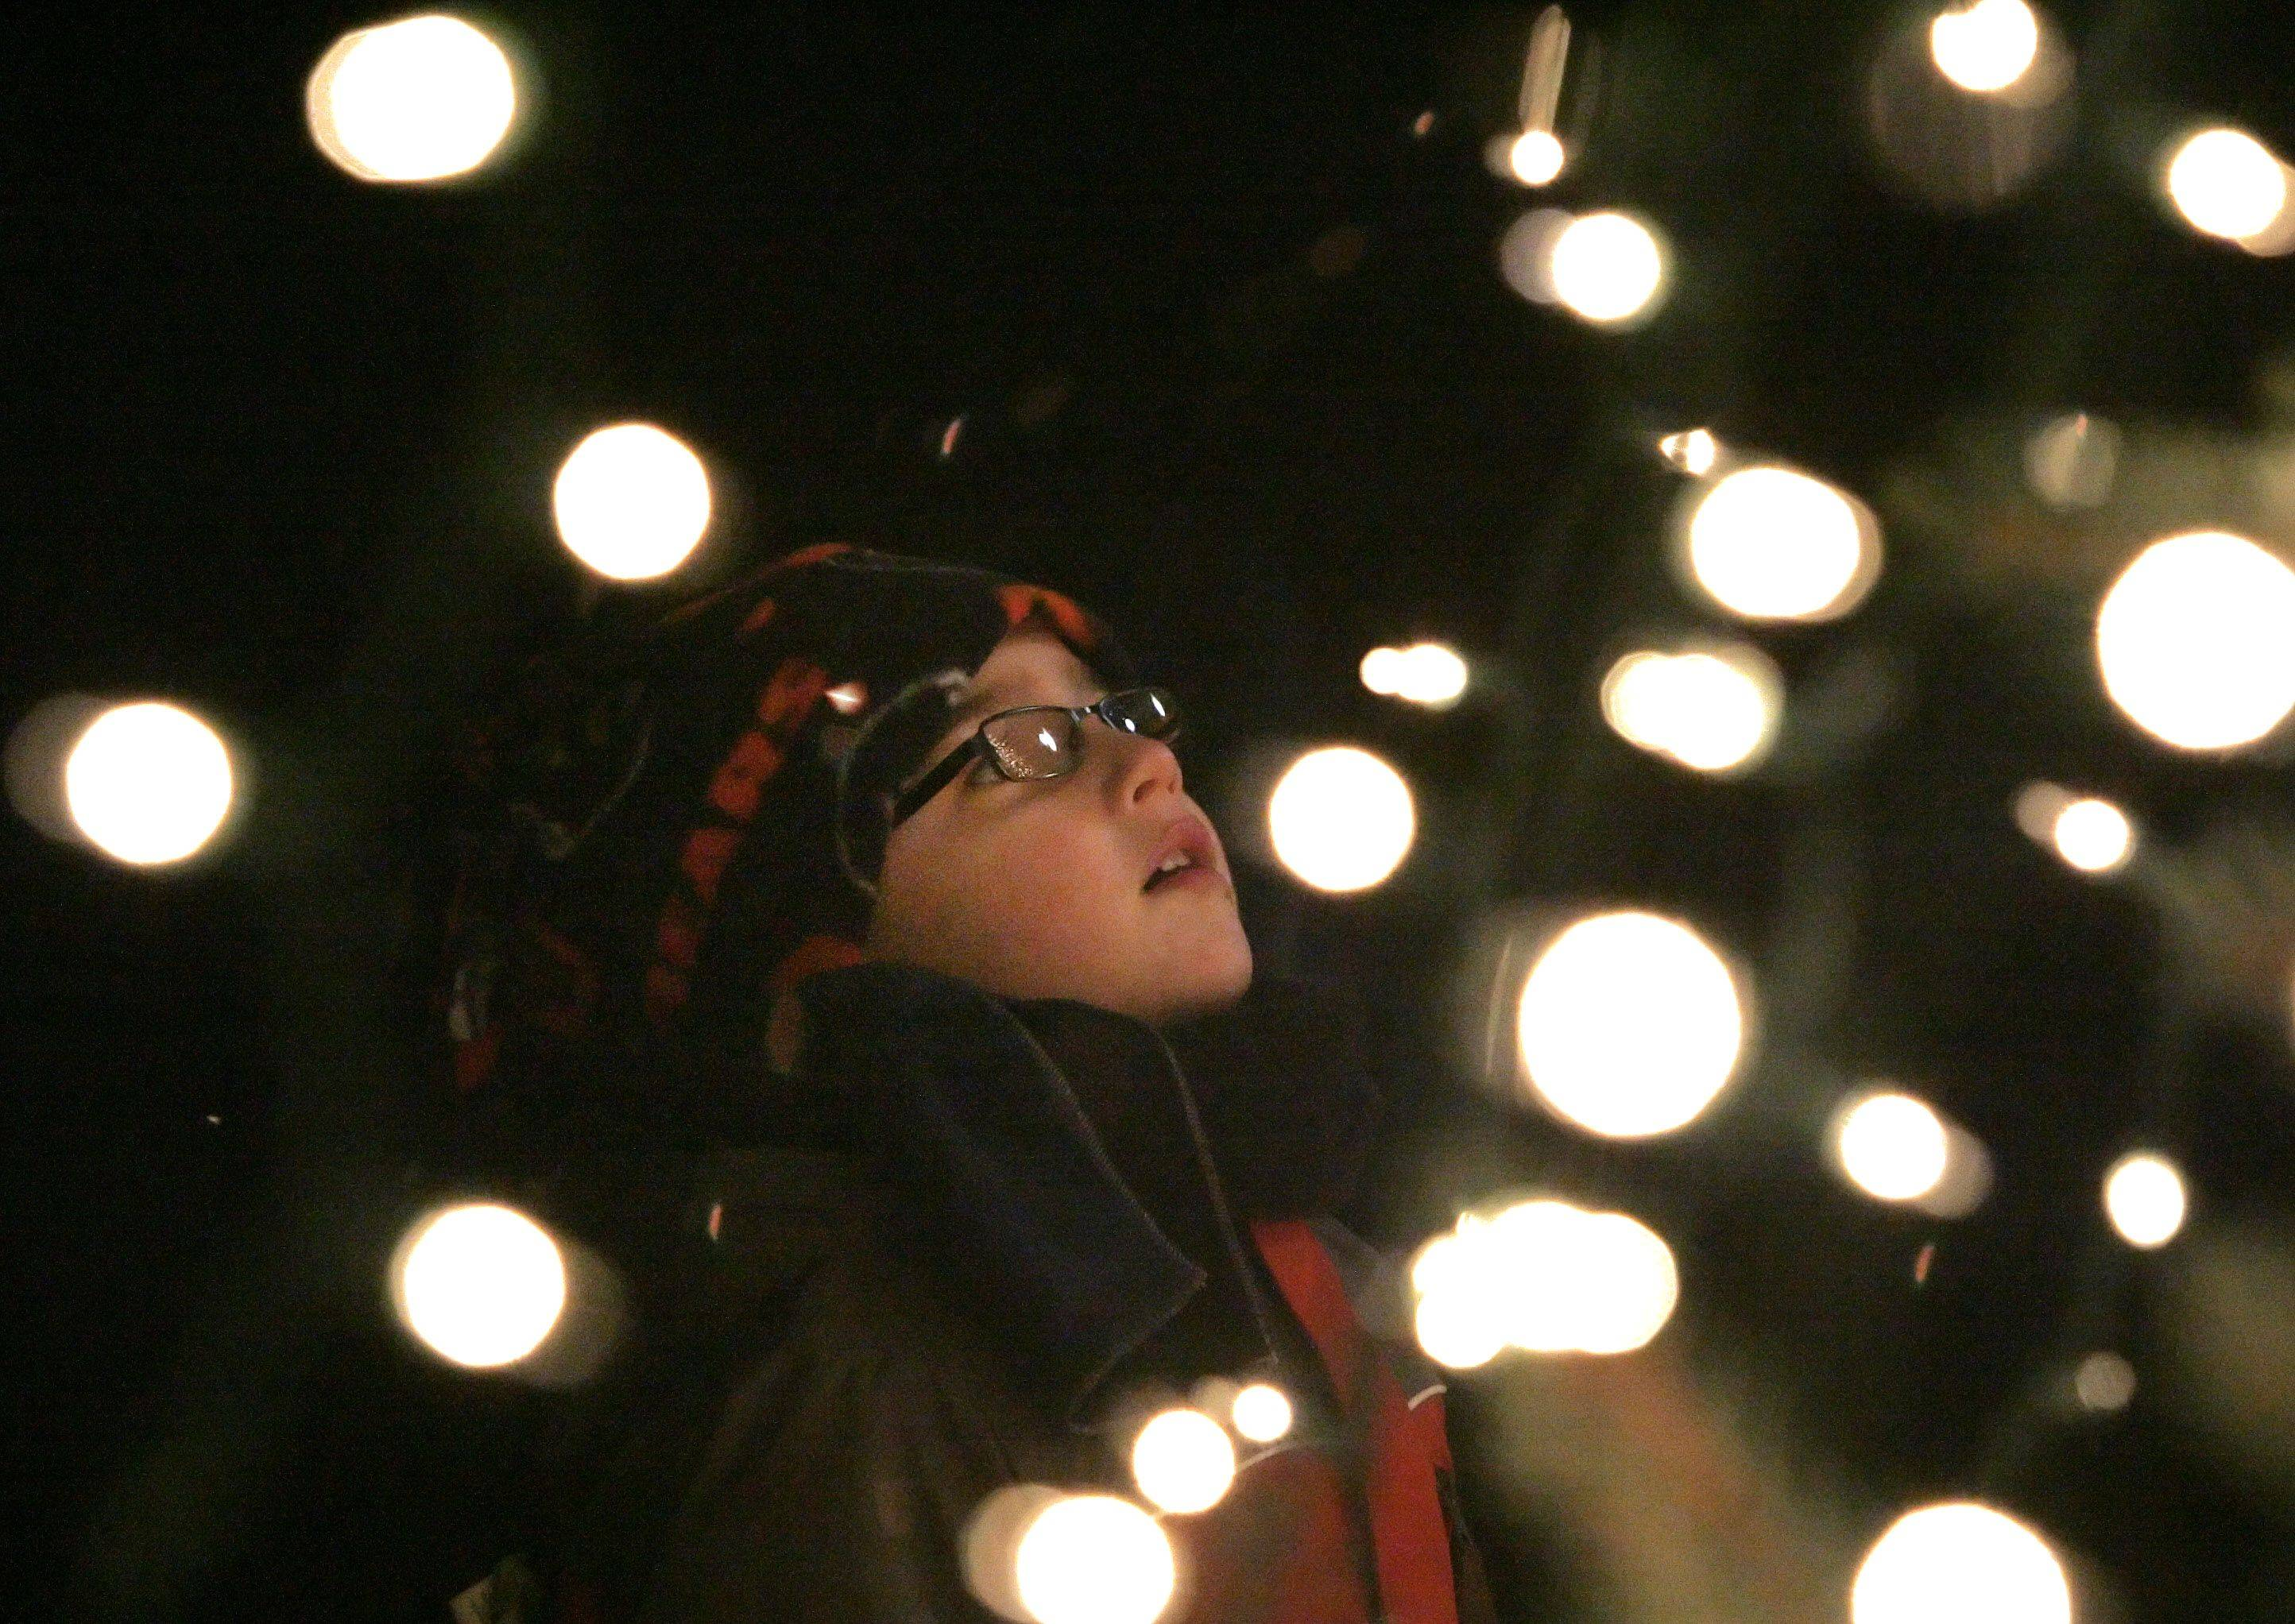 Aidan Rogalski, 5 of Lindenhurst, looks up at the Christmas tree in downtown Grayslake during the official tree lighting ceremony Friday night.